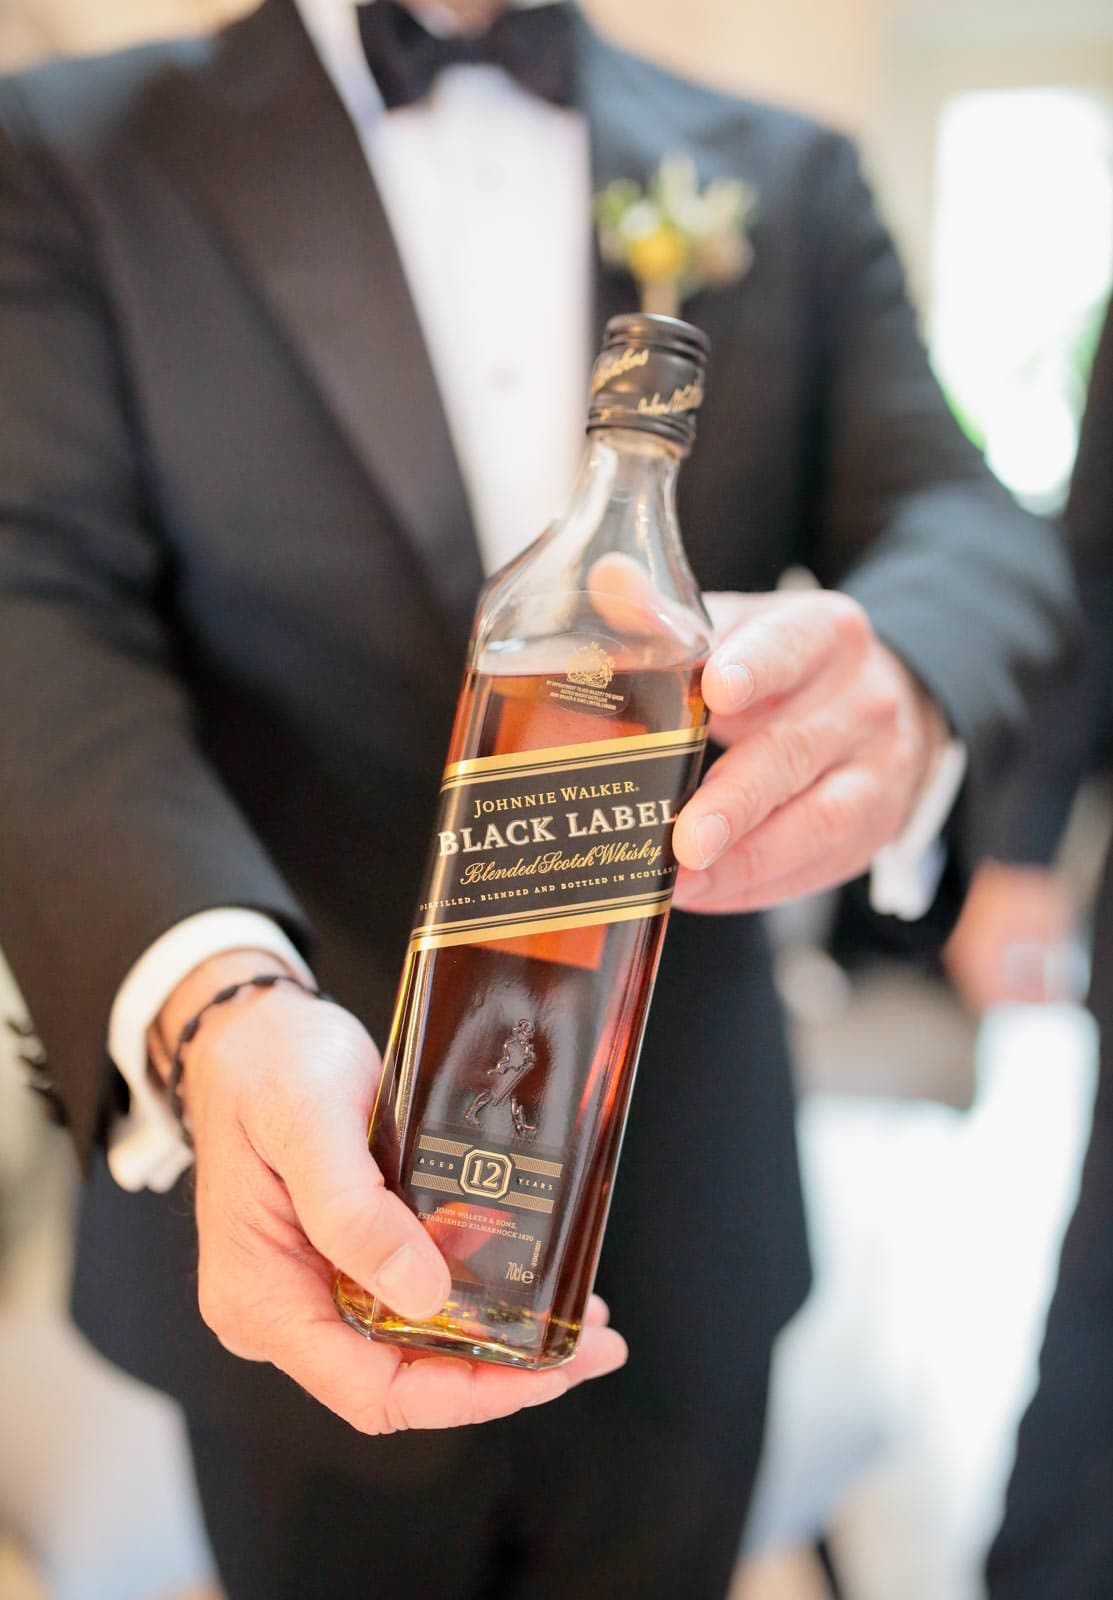 johnnie walker black laber for the toast